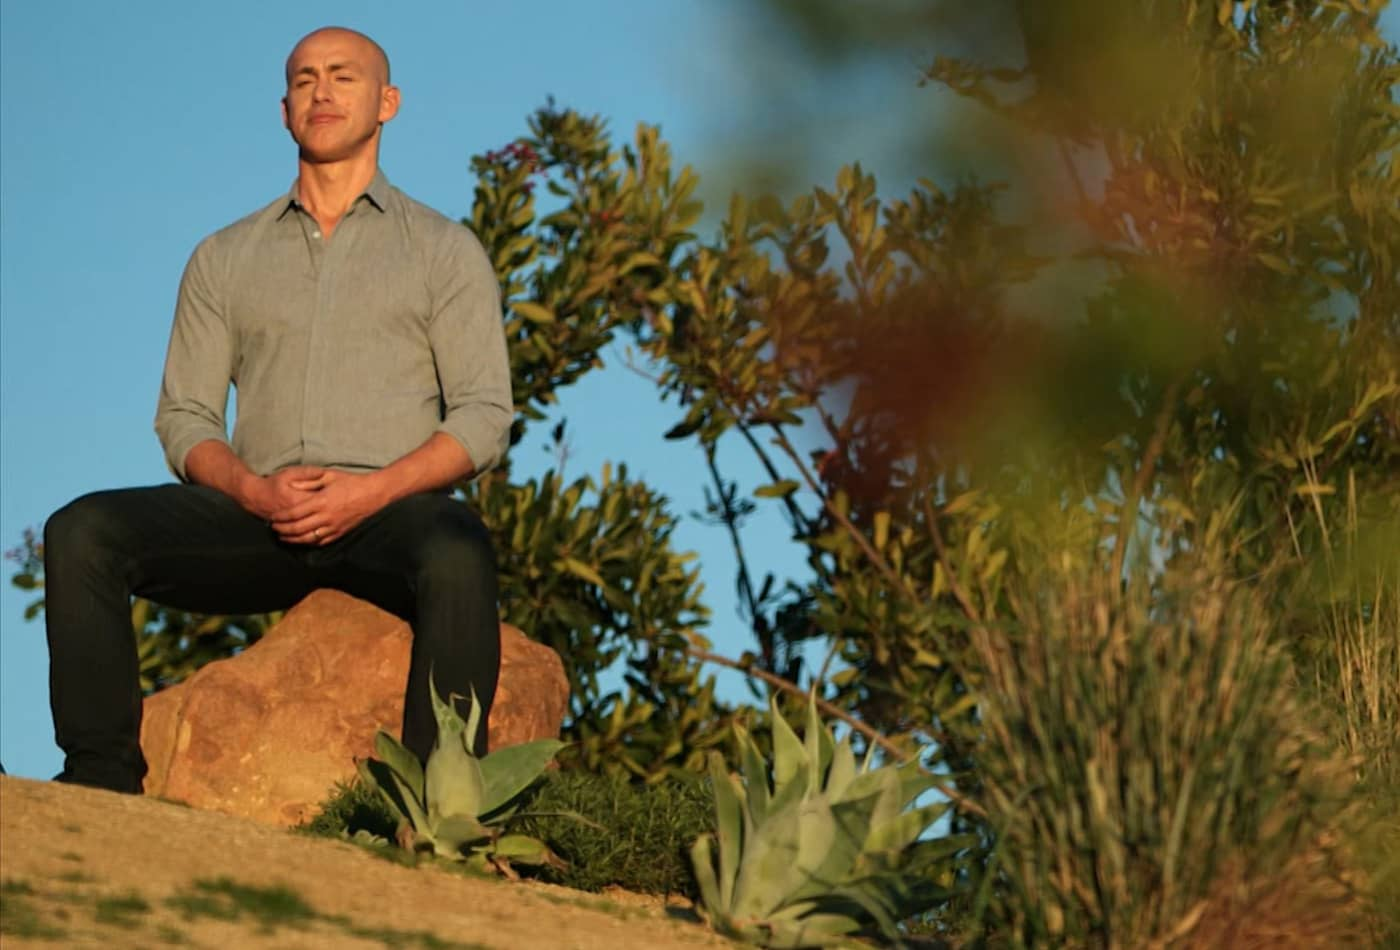 Companies are offering benefits like virtual therapy and meditation apps as Covid-19 stress grows